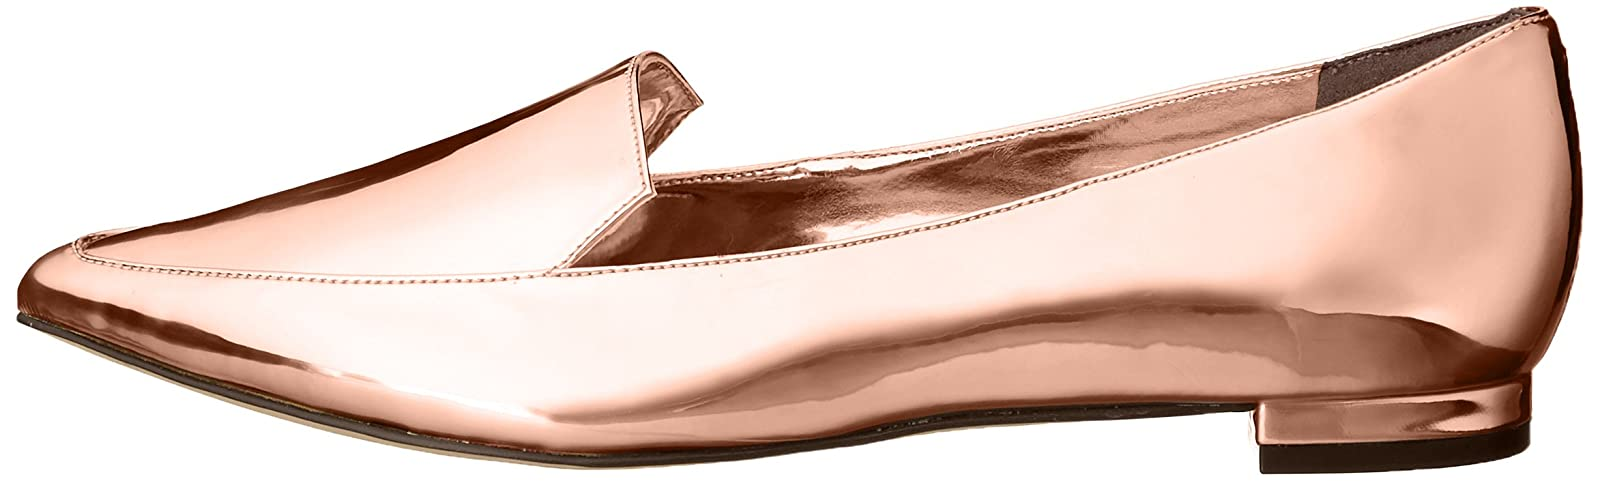 Nine West Women's Abay Patent Pointed Toe Flat US - 5